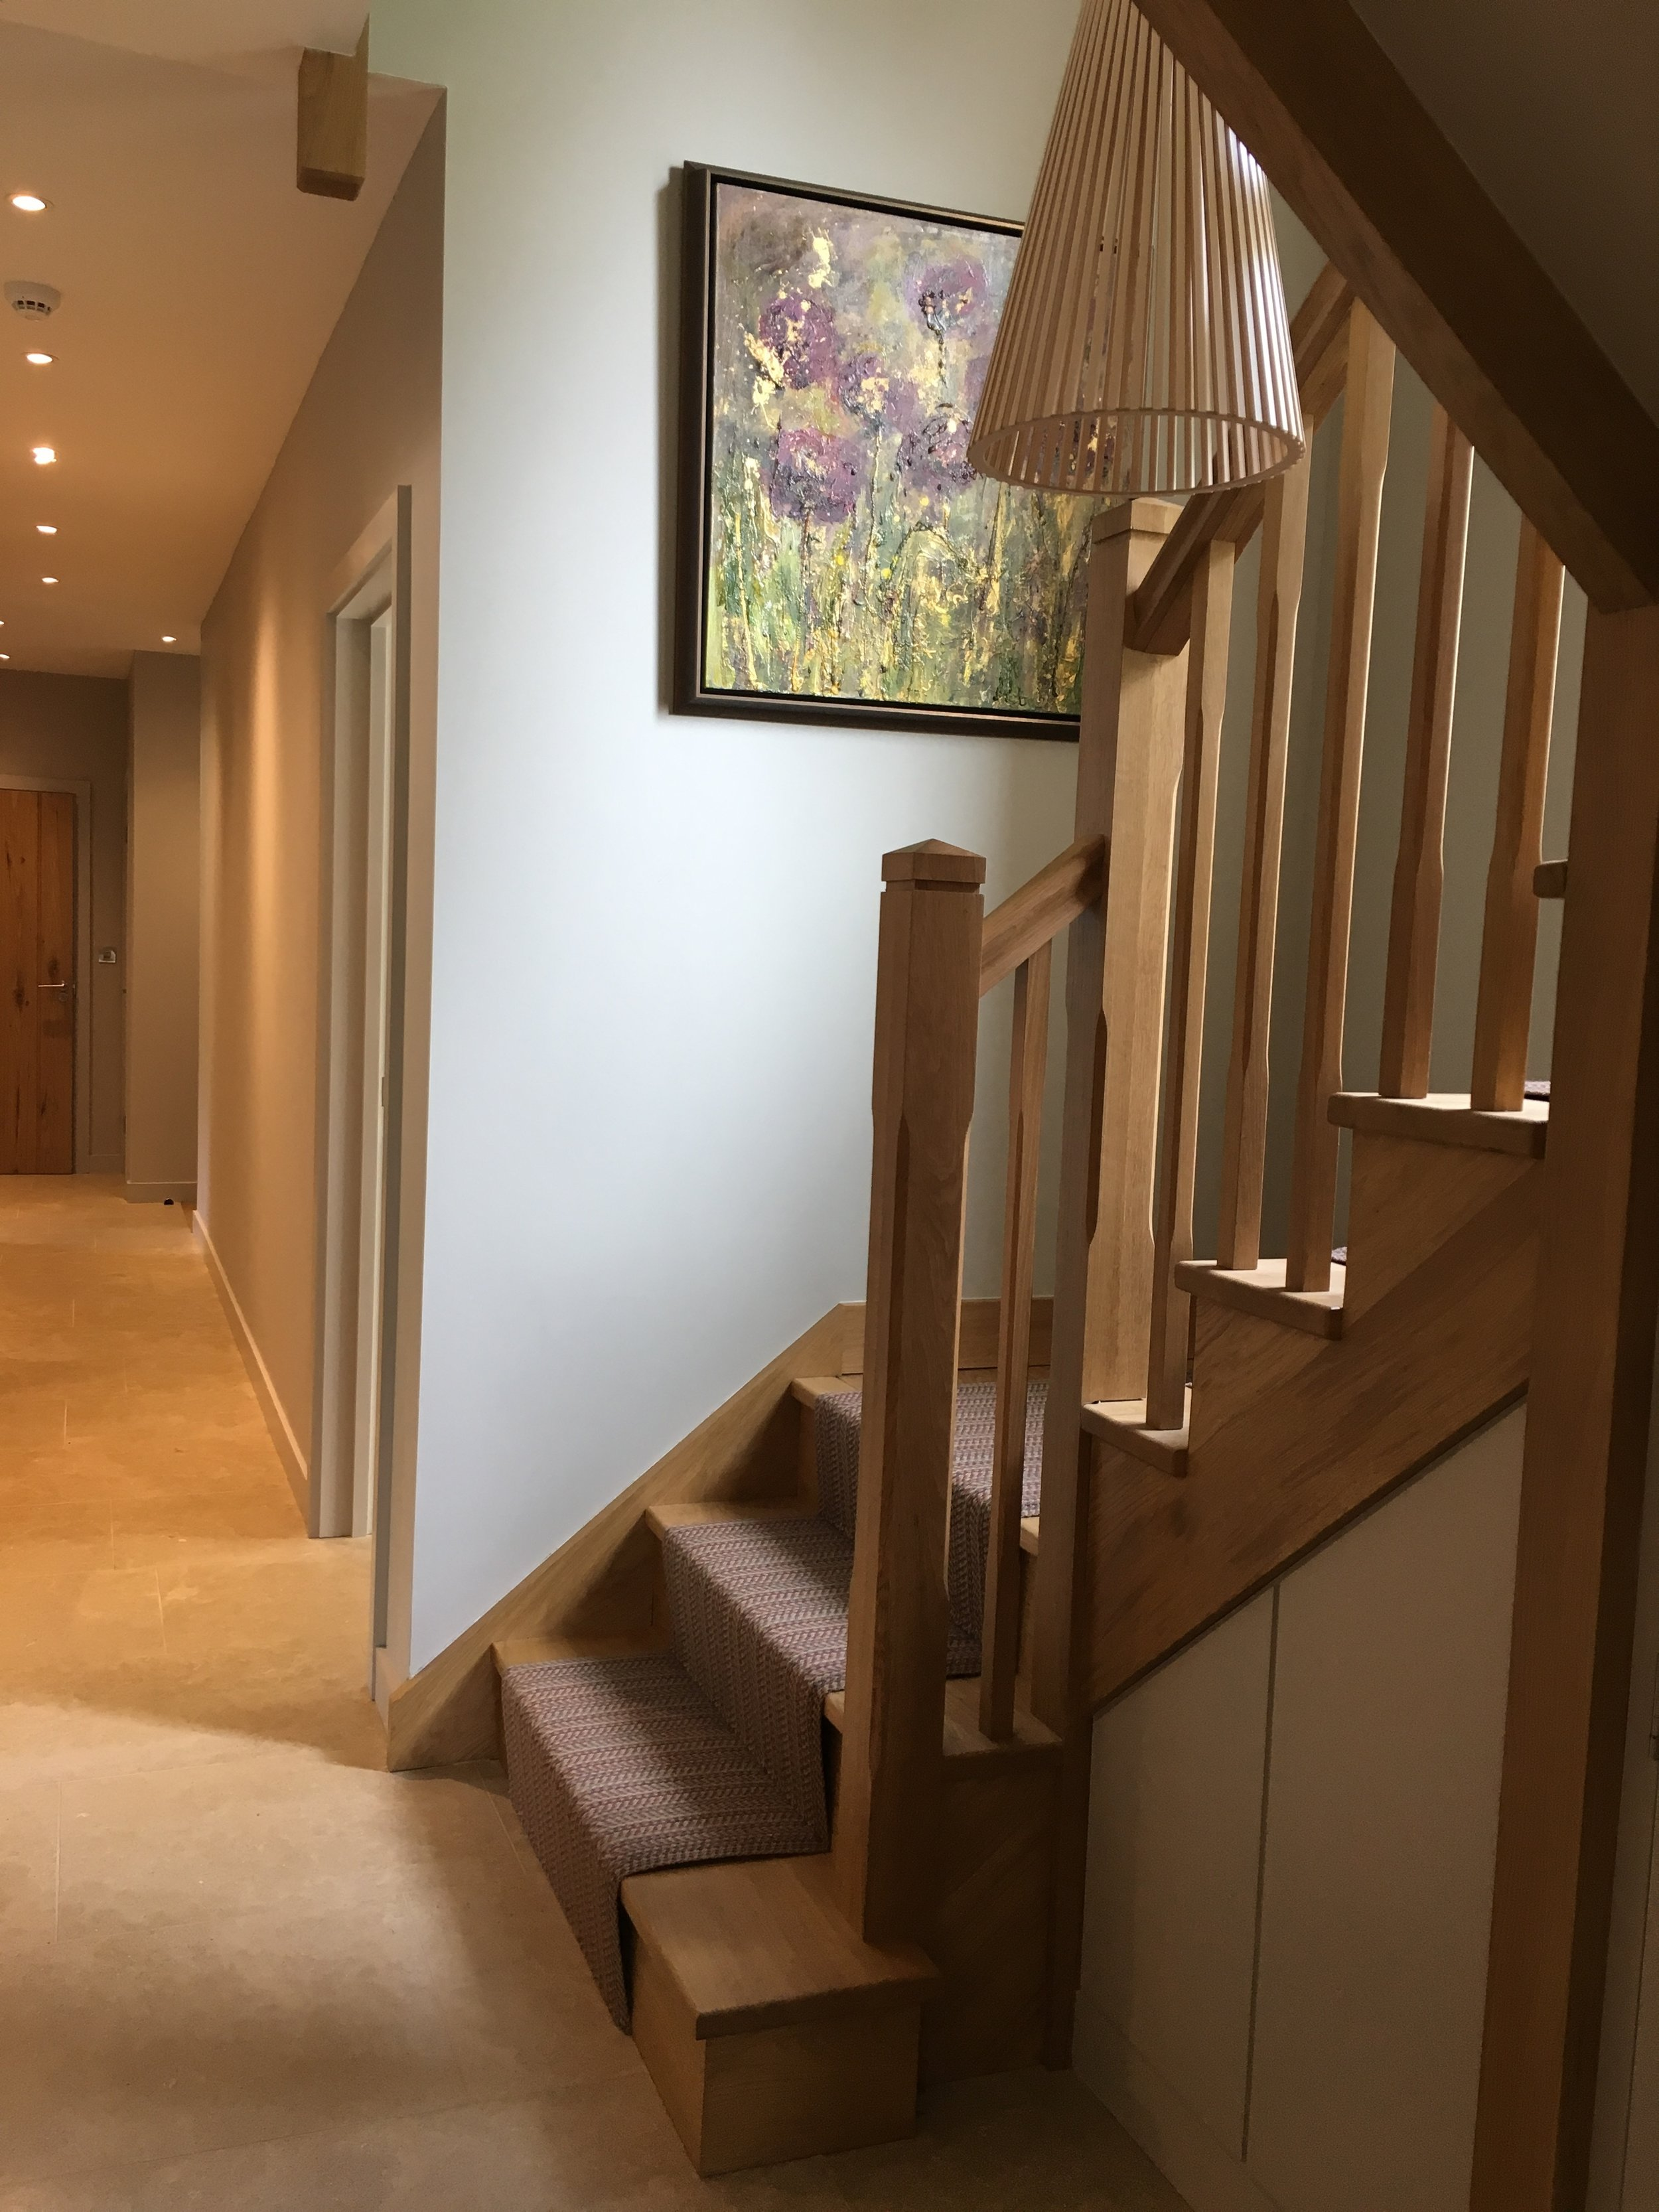 Oak staircase with runner, modern timber pendant light and oil painting.